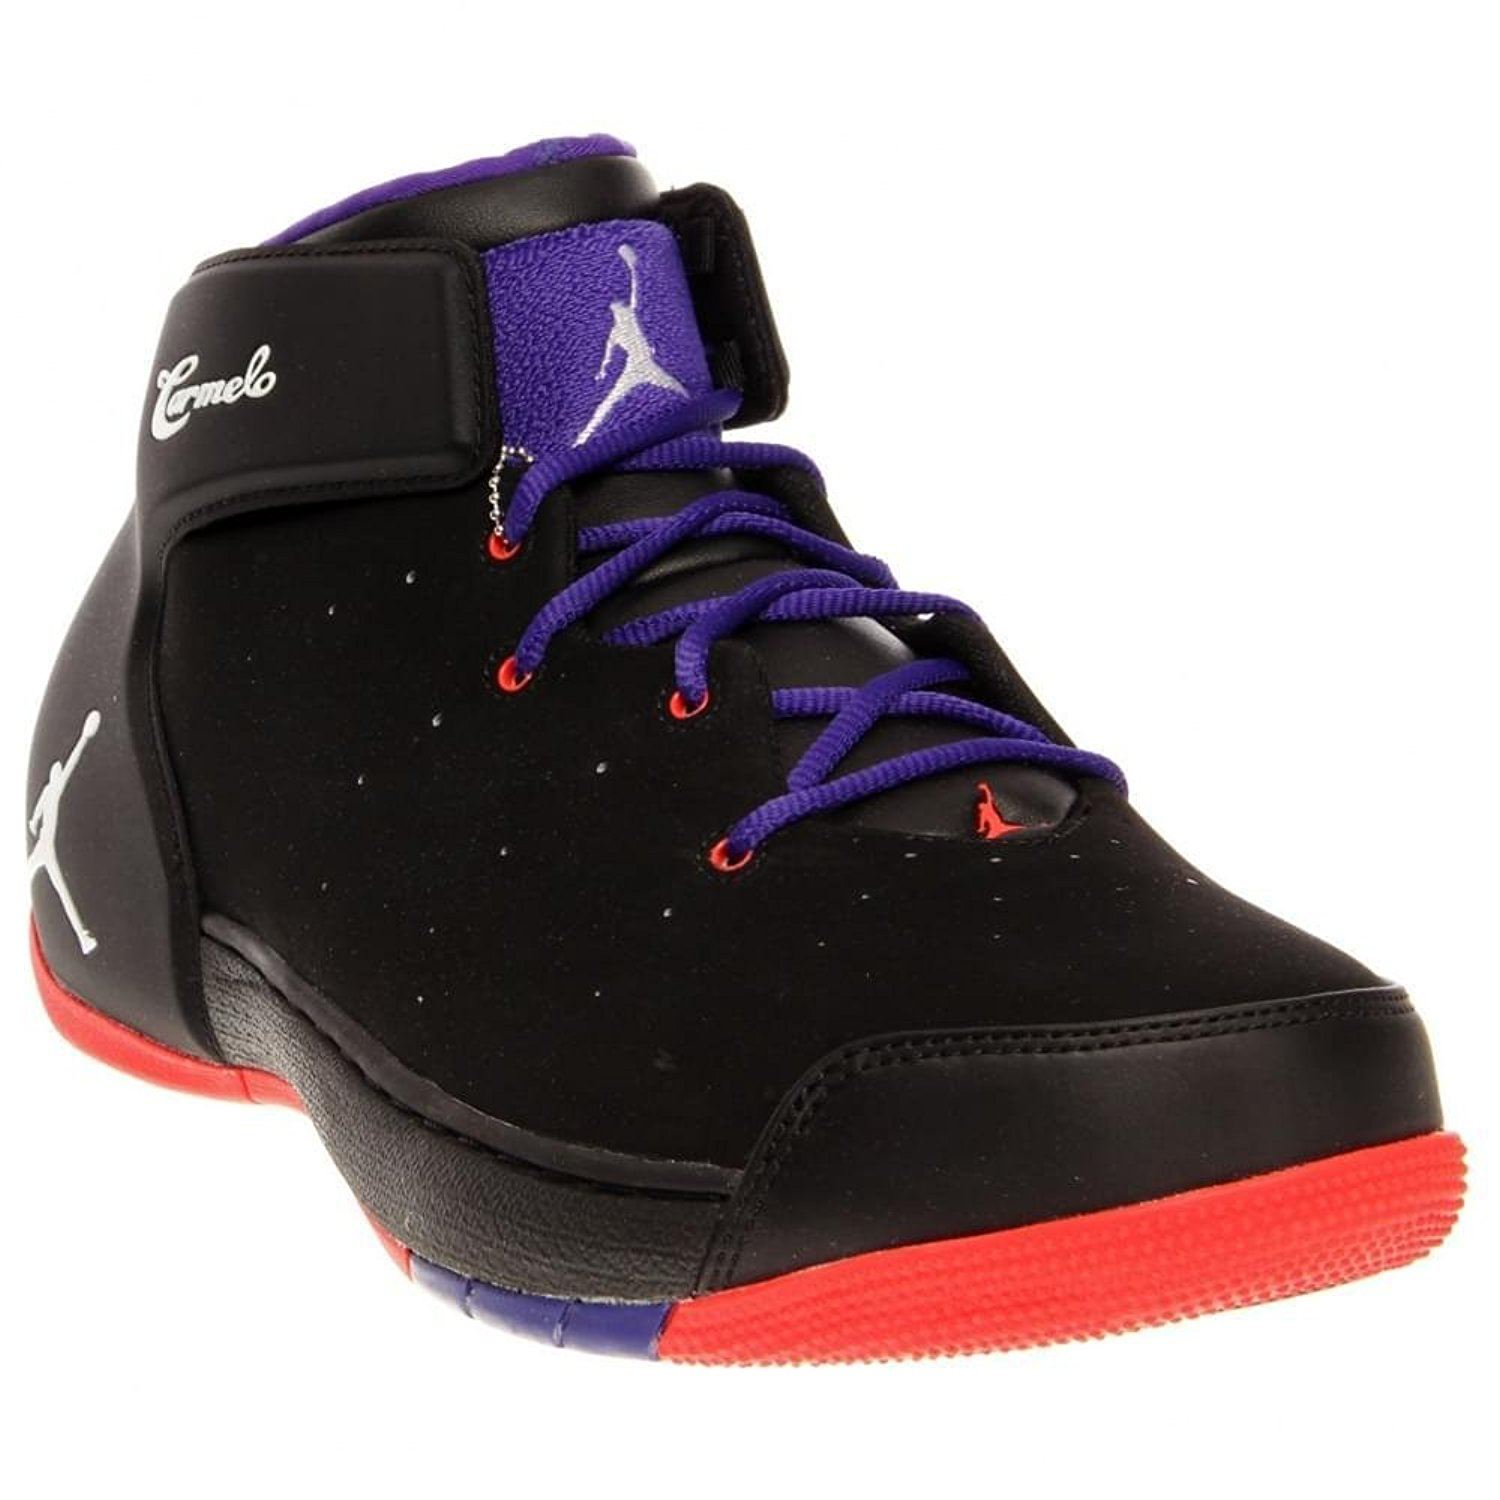 8fd2573a37d5 Get Quotations · Nike Air Jordan Melo 1.5 Mens Basketball Shoes